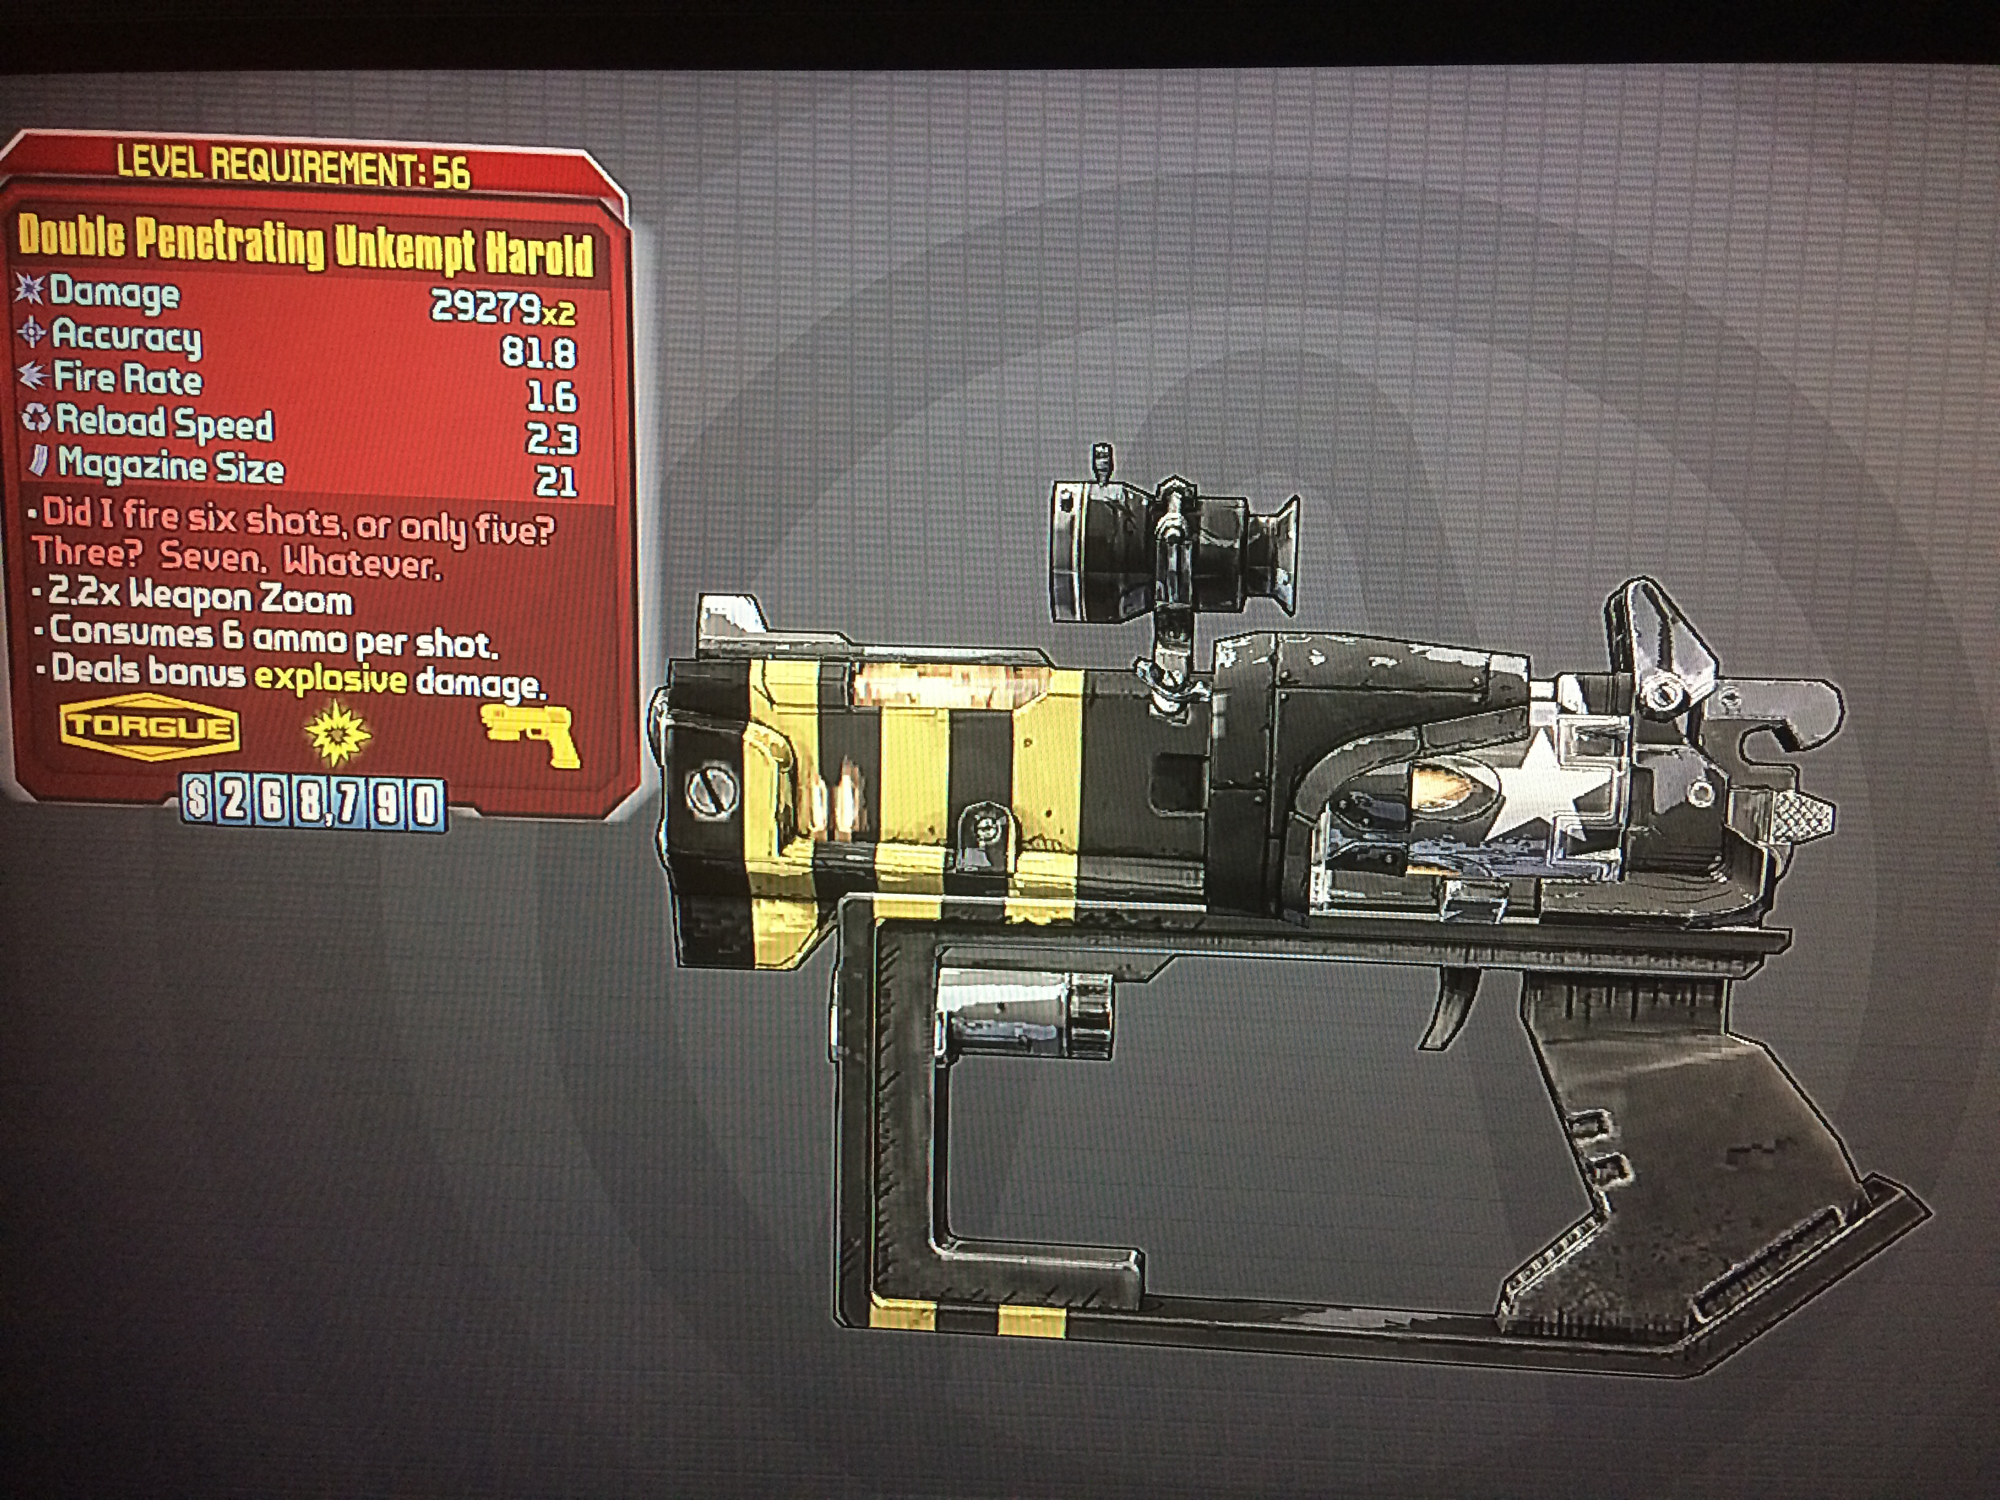 The last 2 DPUHs that I've gotten have looked like this, what's the best version or build out there?